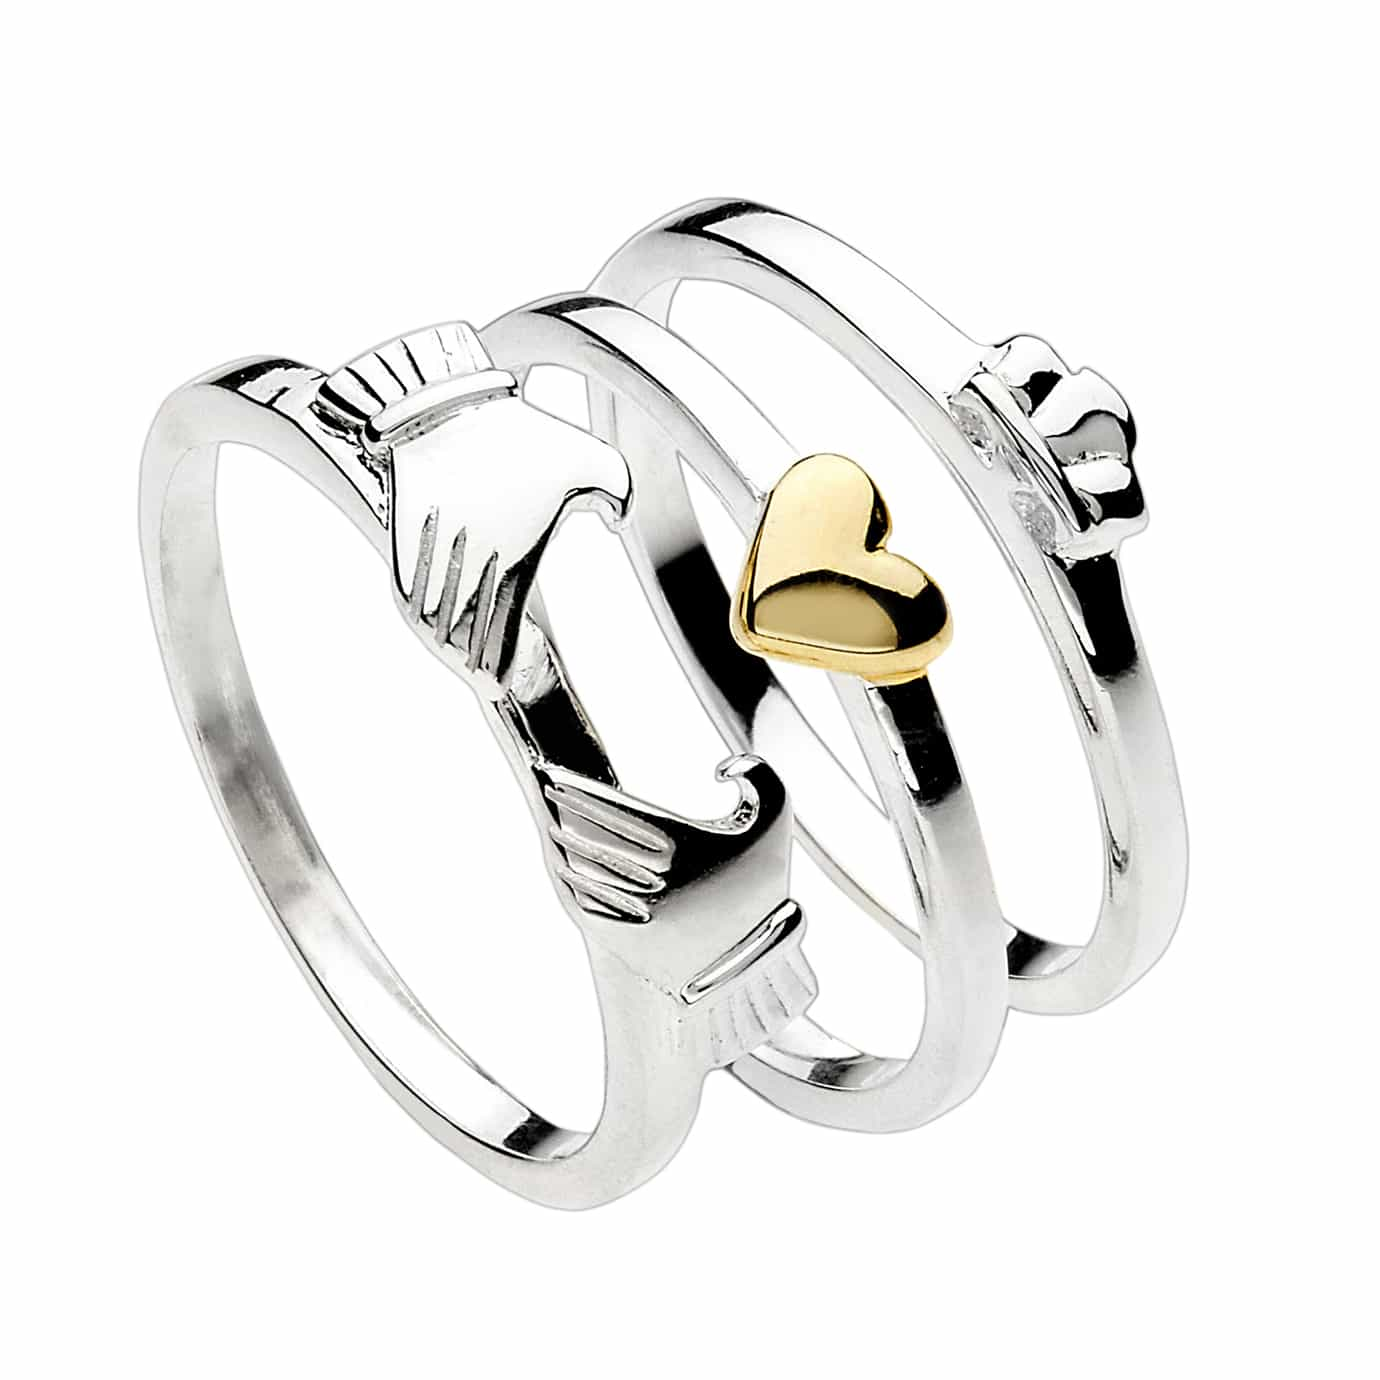 sterling rings of website favor silver ring